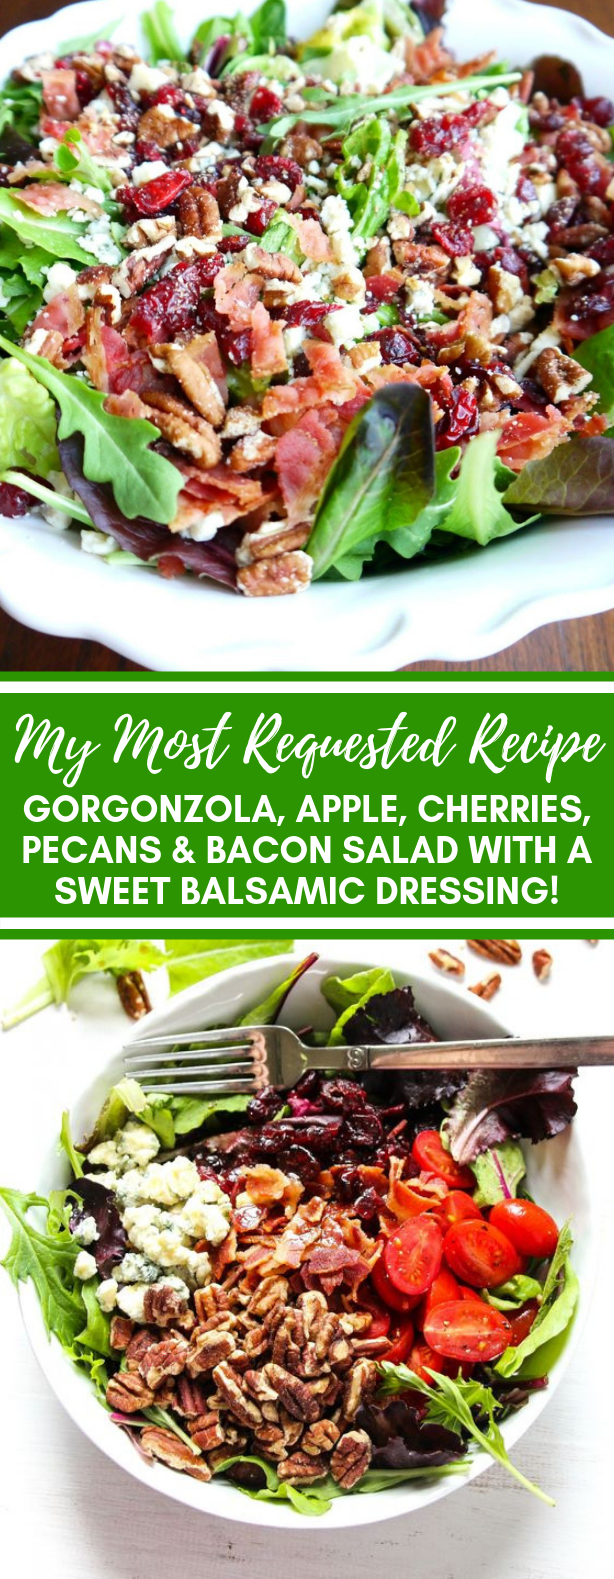 MY MOST REQUESTED RECIPE ~ GORGONZOLA, APPLE, CHERRIES, PECANS & BACON SALAD WITH A SWEET BALSAMIC DRESSING! #vegetarian #vegetable #cookiesalad